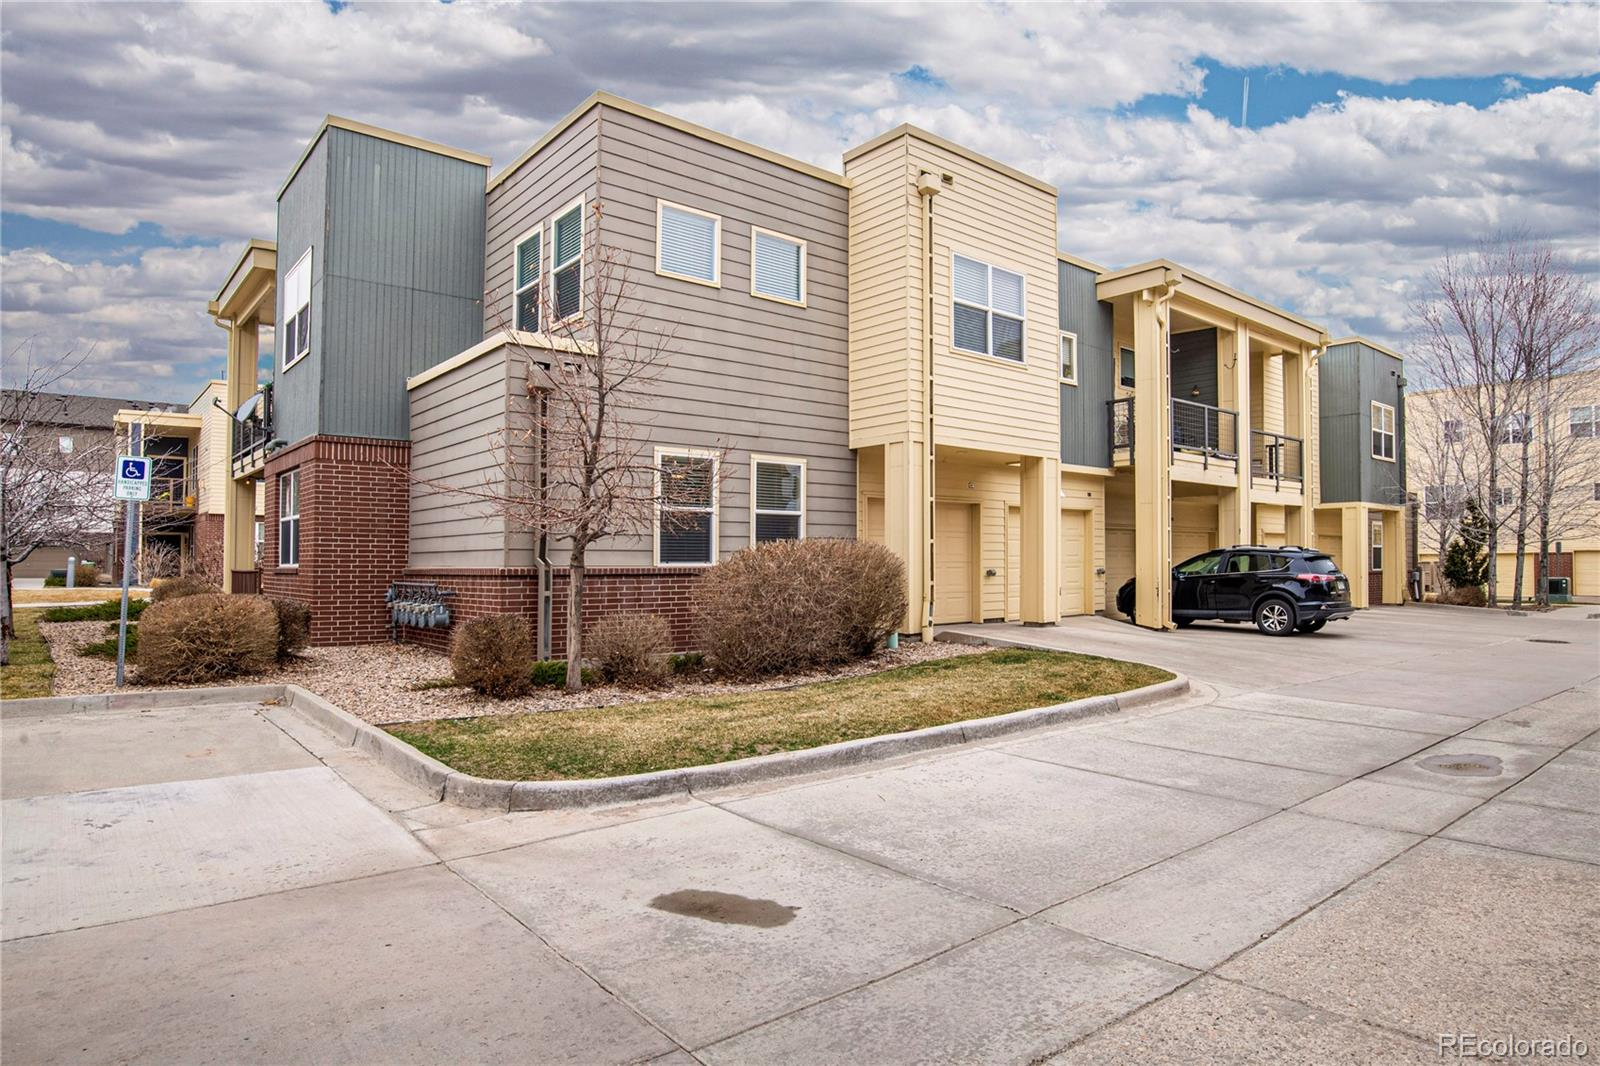 MLS# 4055353 - 21 - 11213 Colony Circle, Broomfield, CO 80021